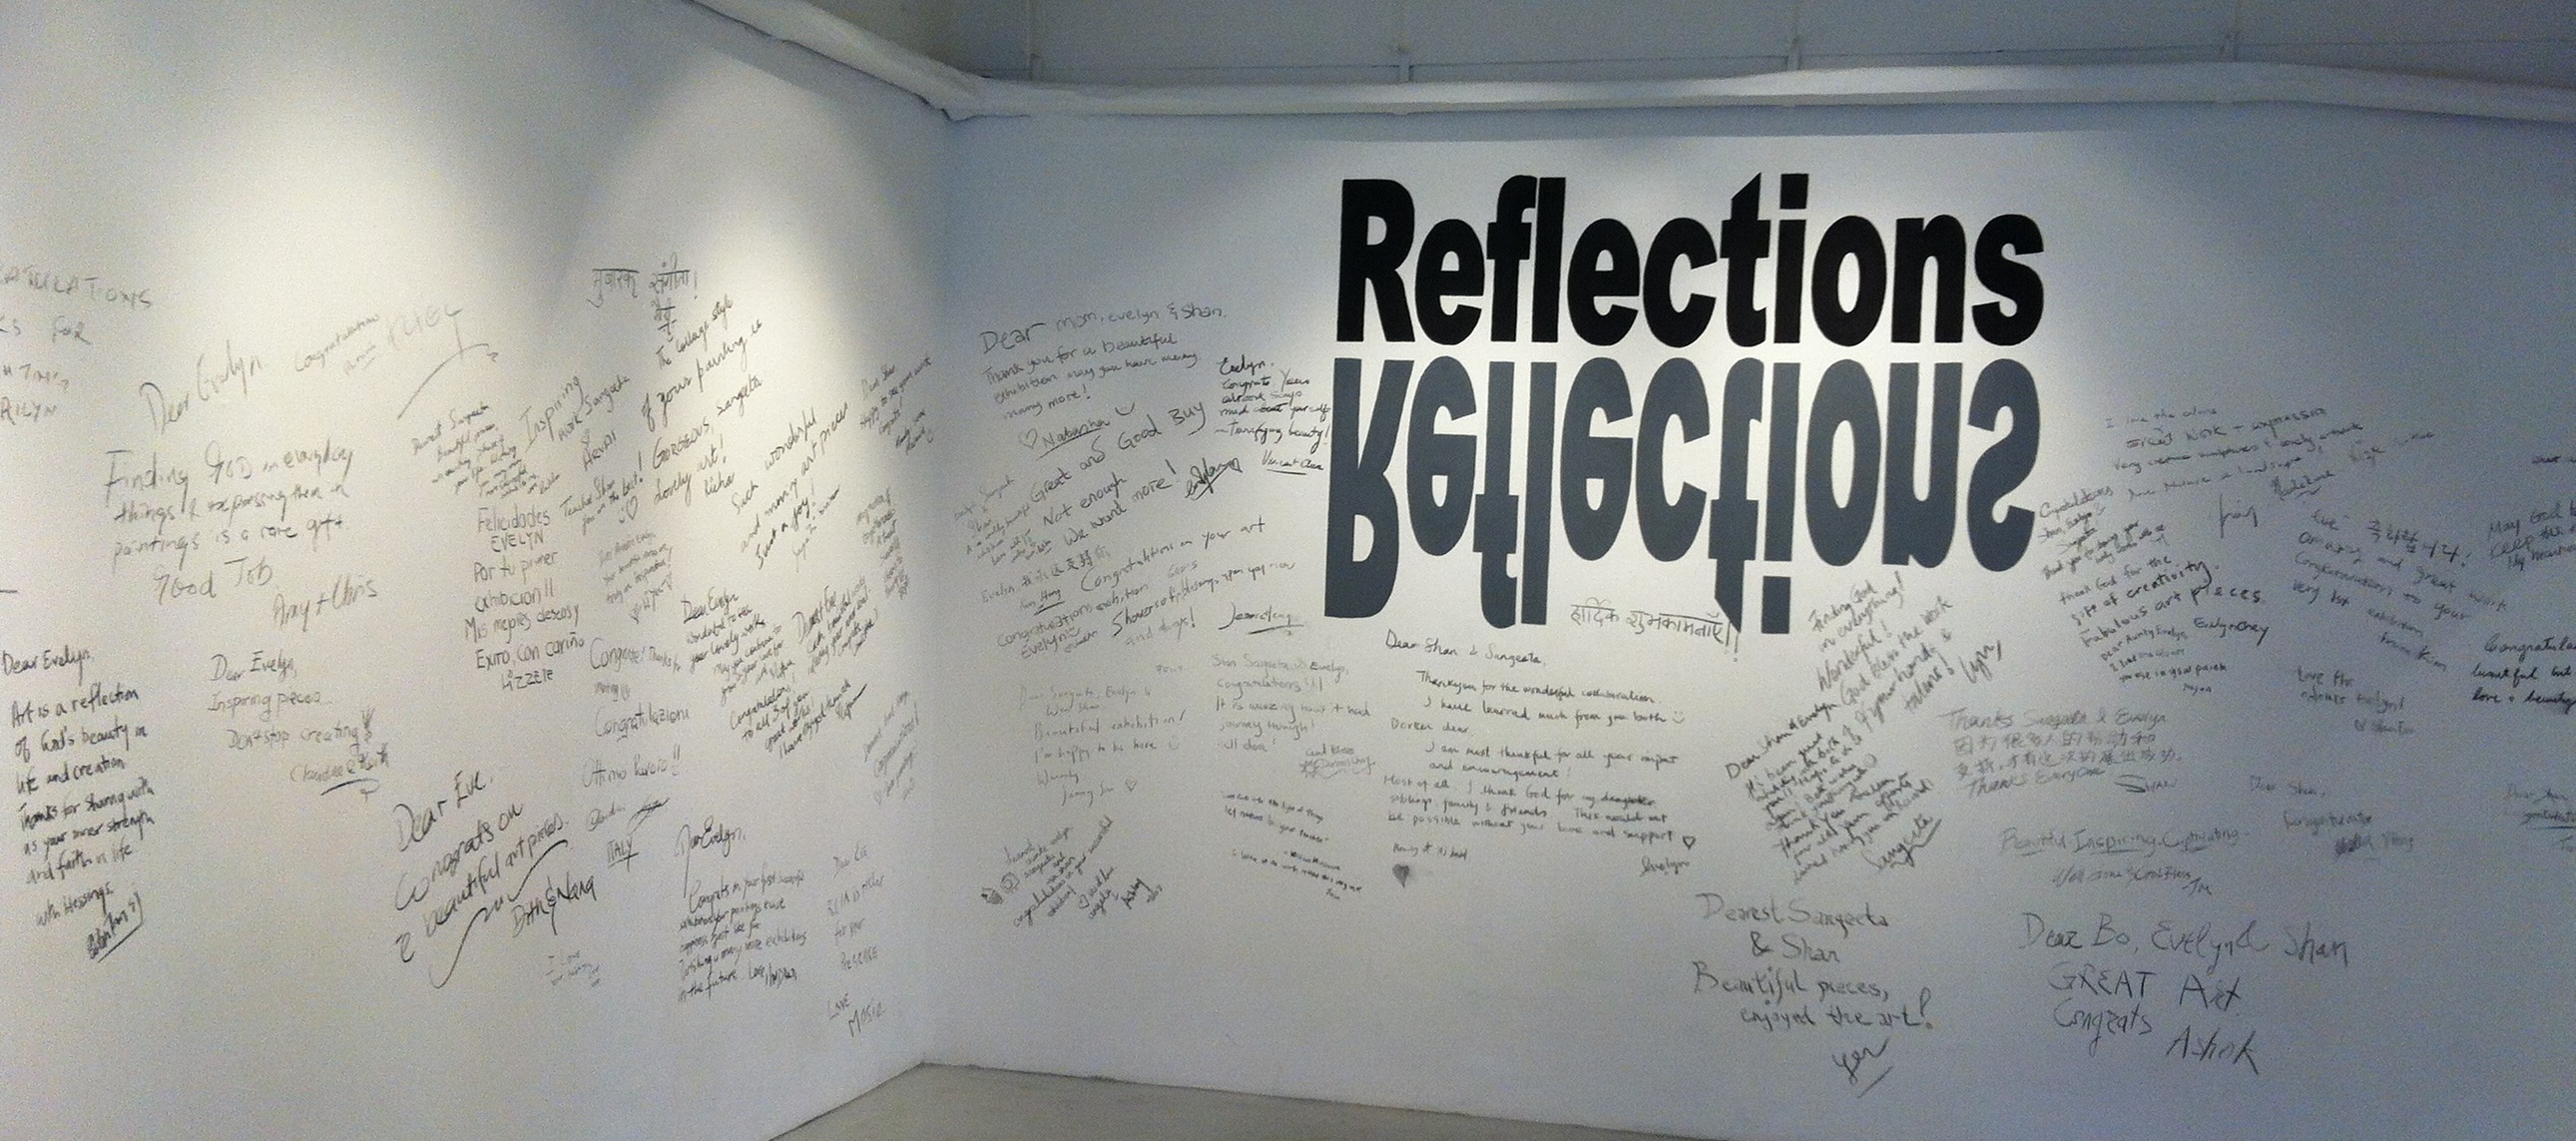 Reflections - exhibition, Singapore.